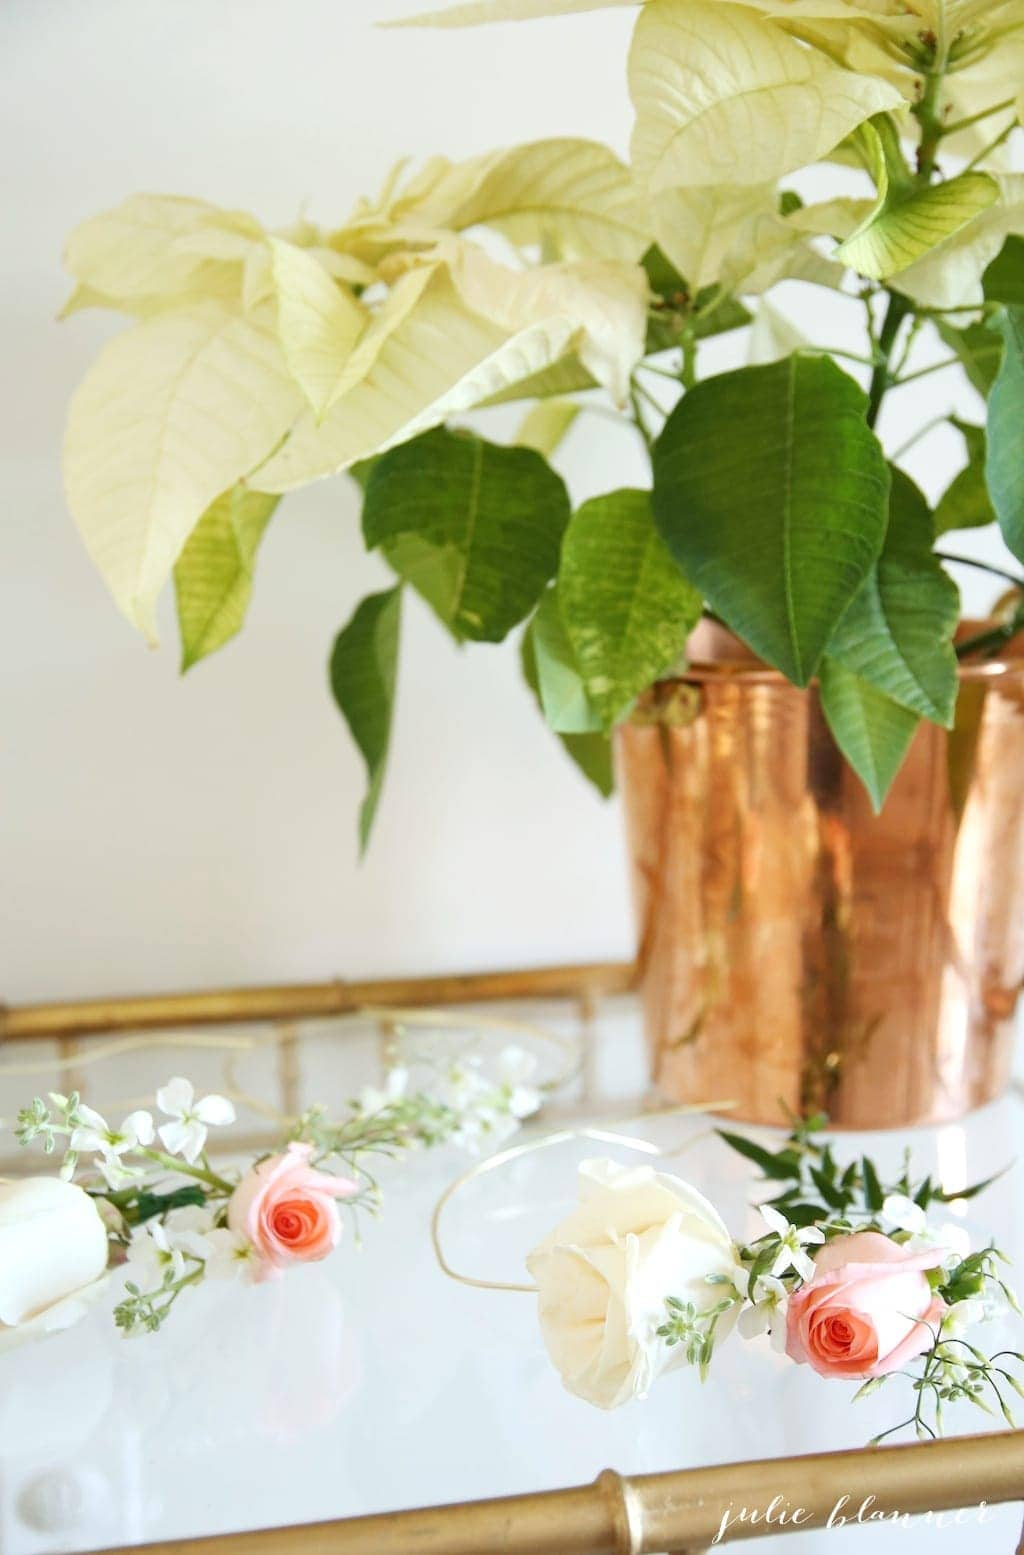 Learn how to make a flower crown - a beautiful favor to gift guests as they arrive!